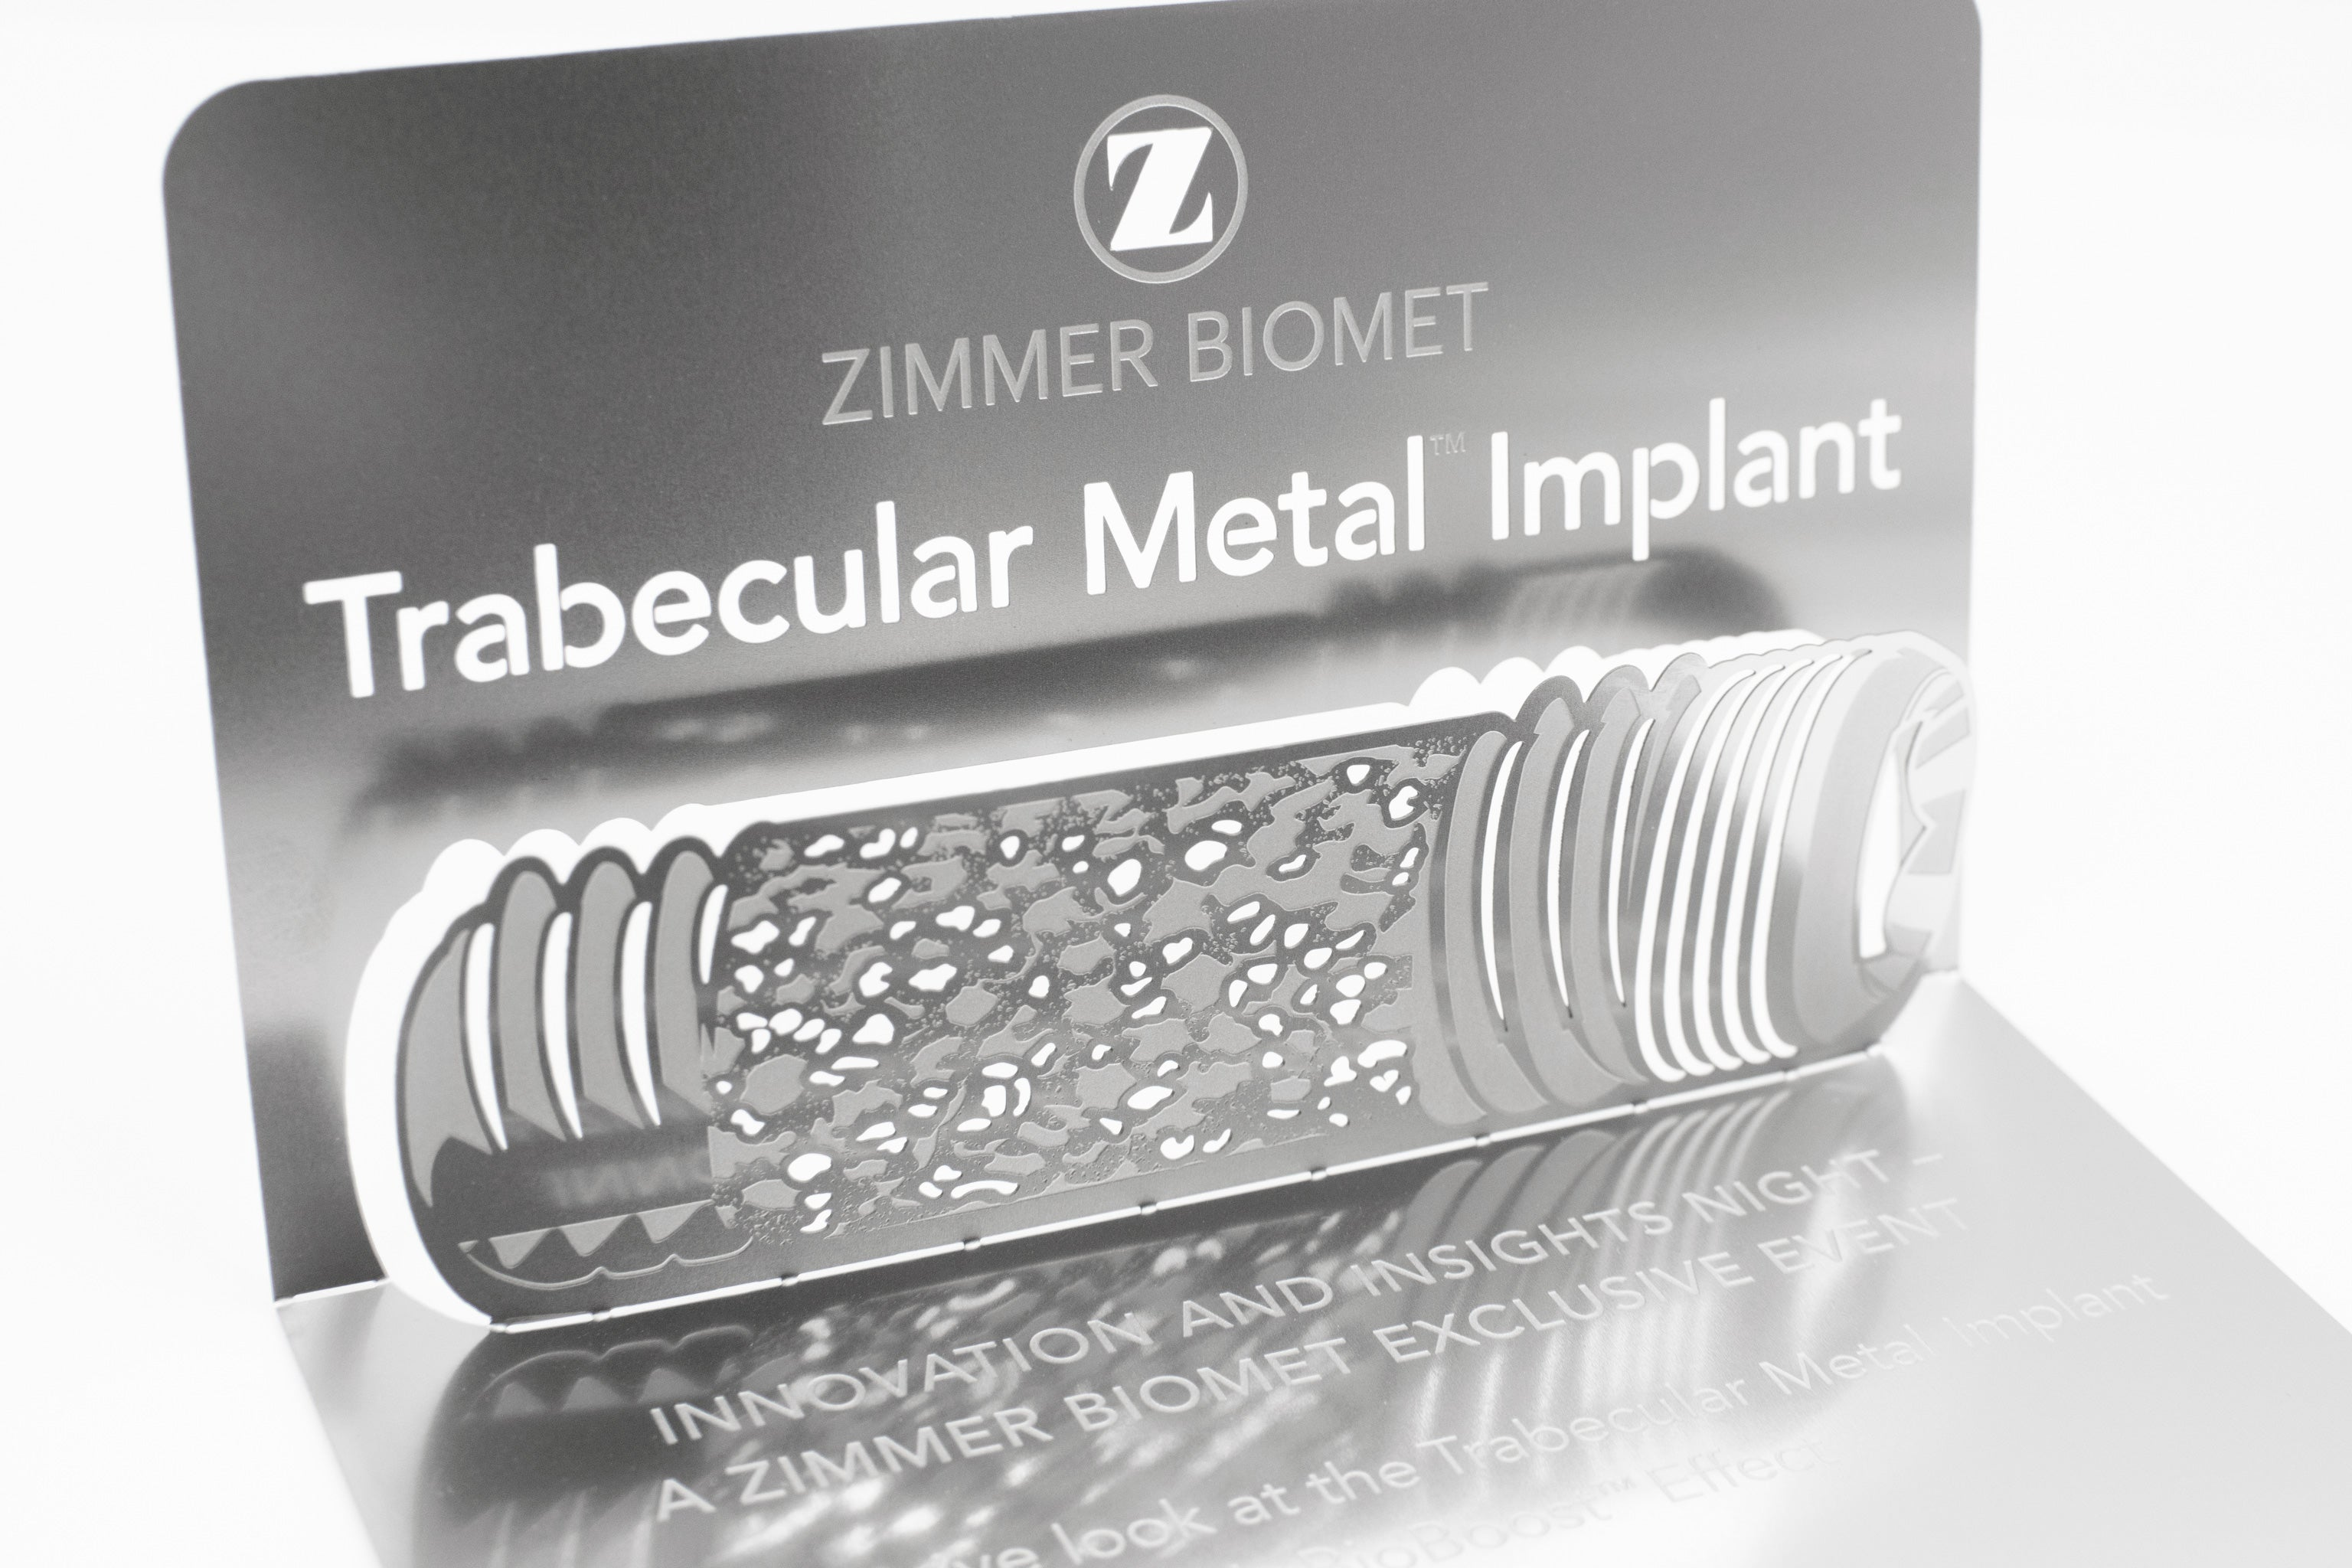 Zimmer Biomet Metal Corporate Invitation In Box8